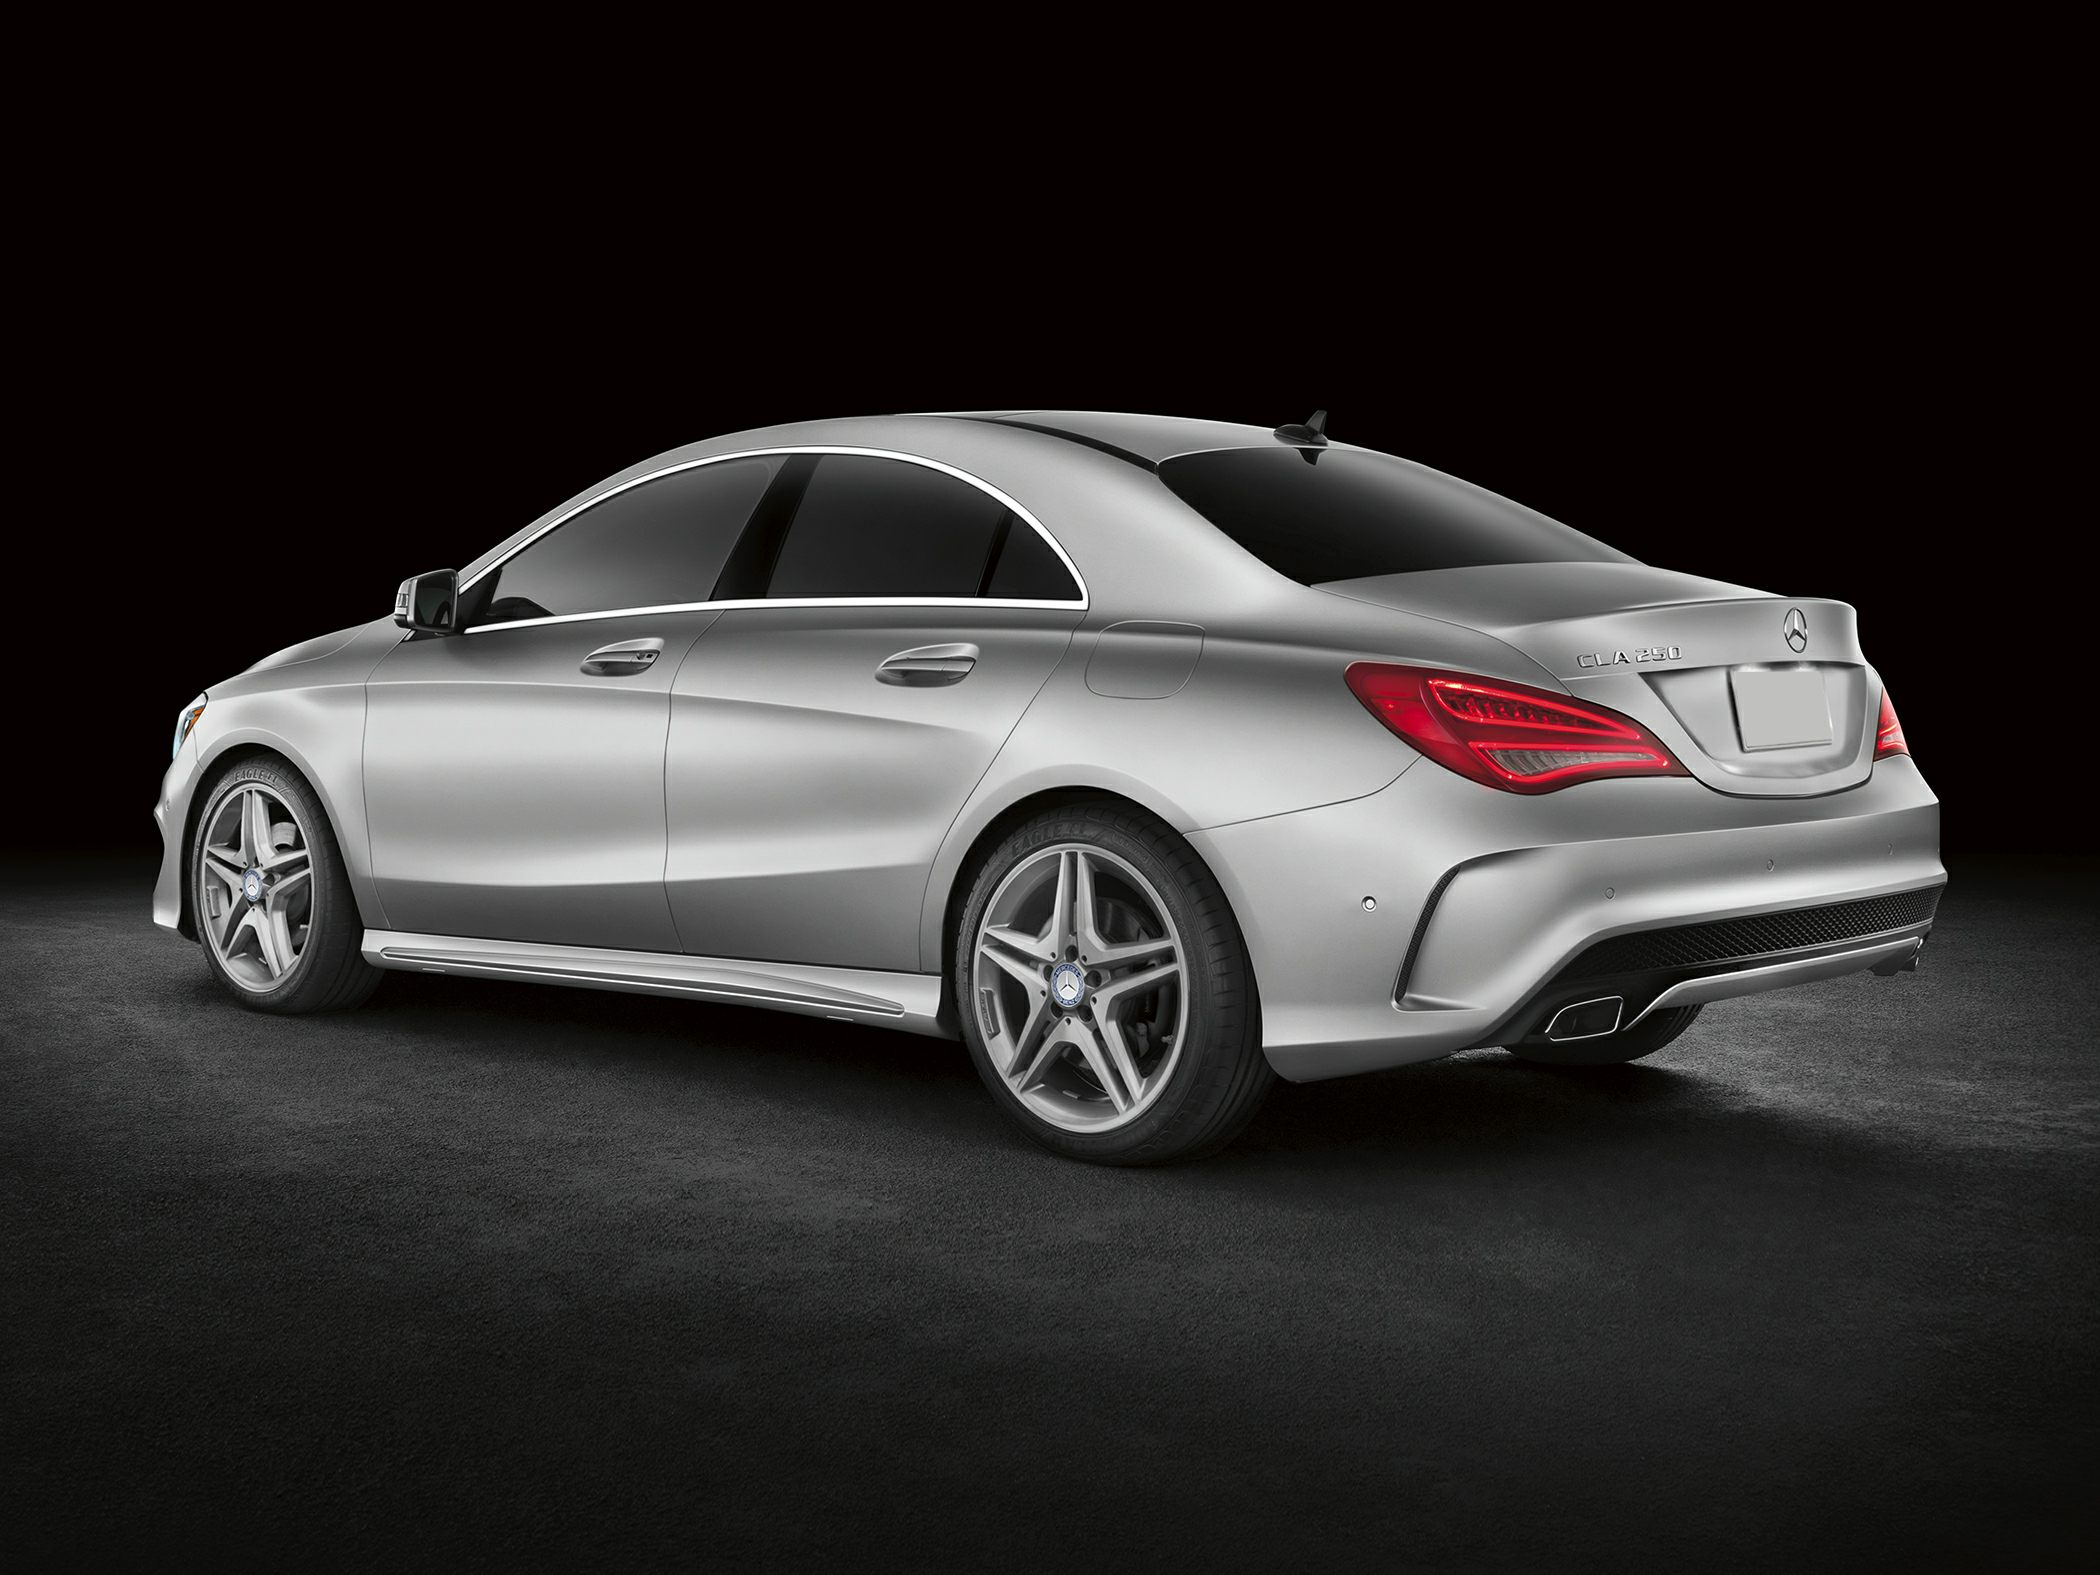 2016 mercedes benz cla250 styles features highlights. Black Bedroom Furniture Sets. Home Design Ideas